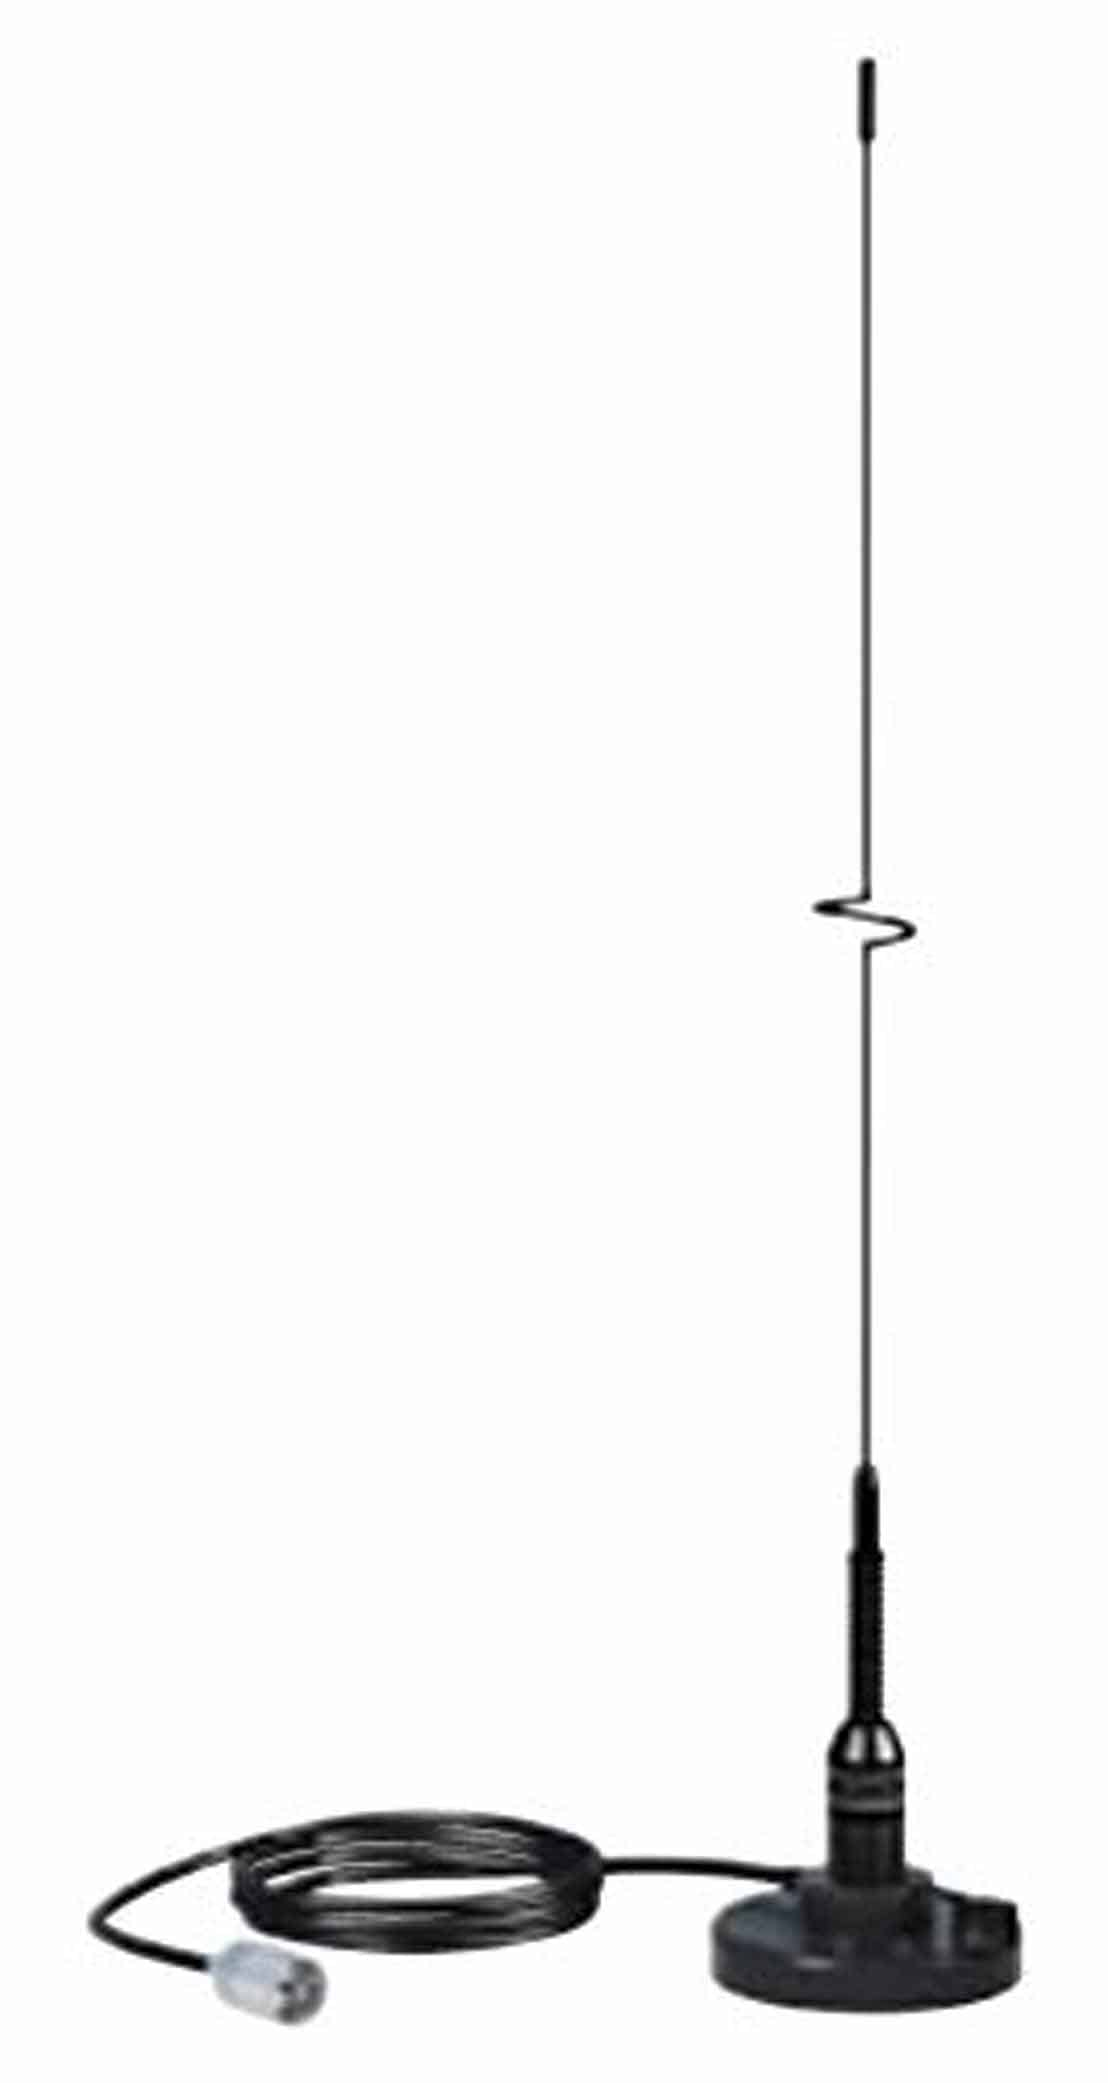 "5218 - Shakespeare Black 19"" Vhf Magnetic Mount Antenna with RG58AU Coax"